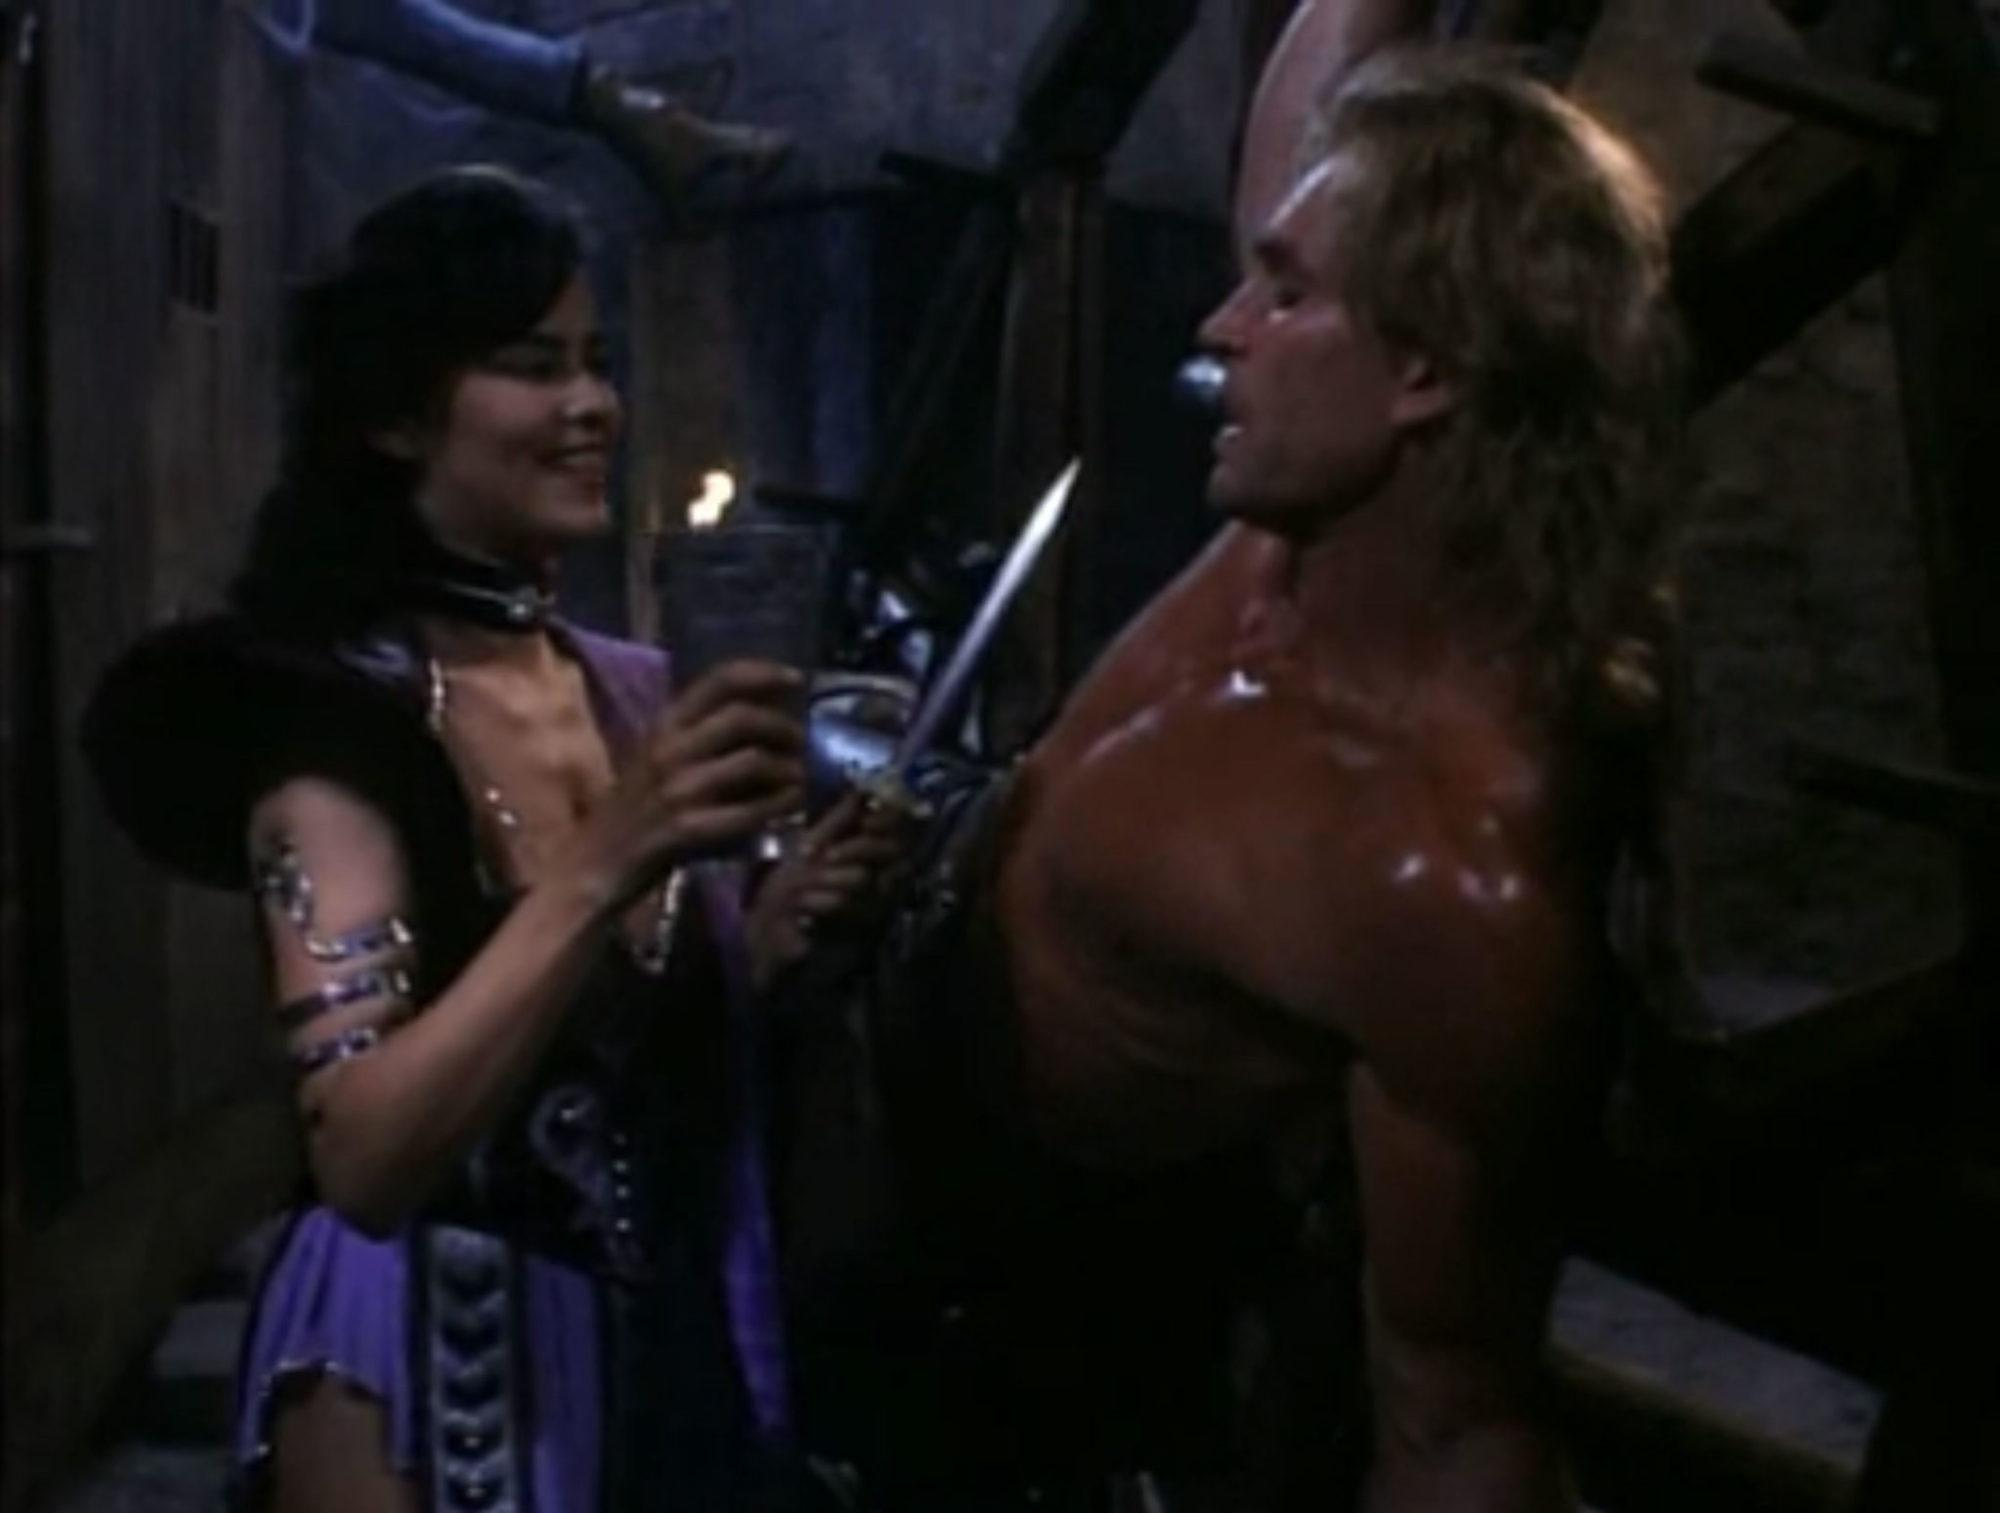 Michelle Moffett and Rick Hill in Deathstalker IV: Match of Titans